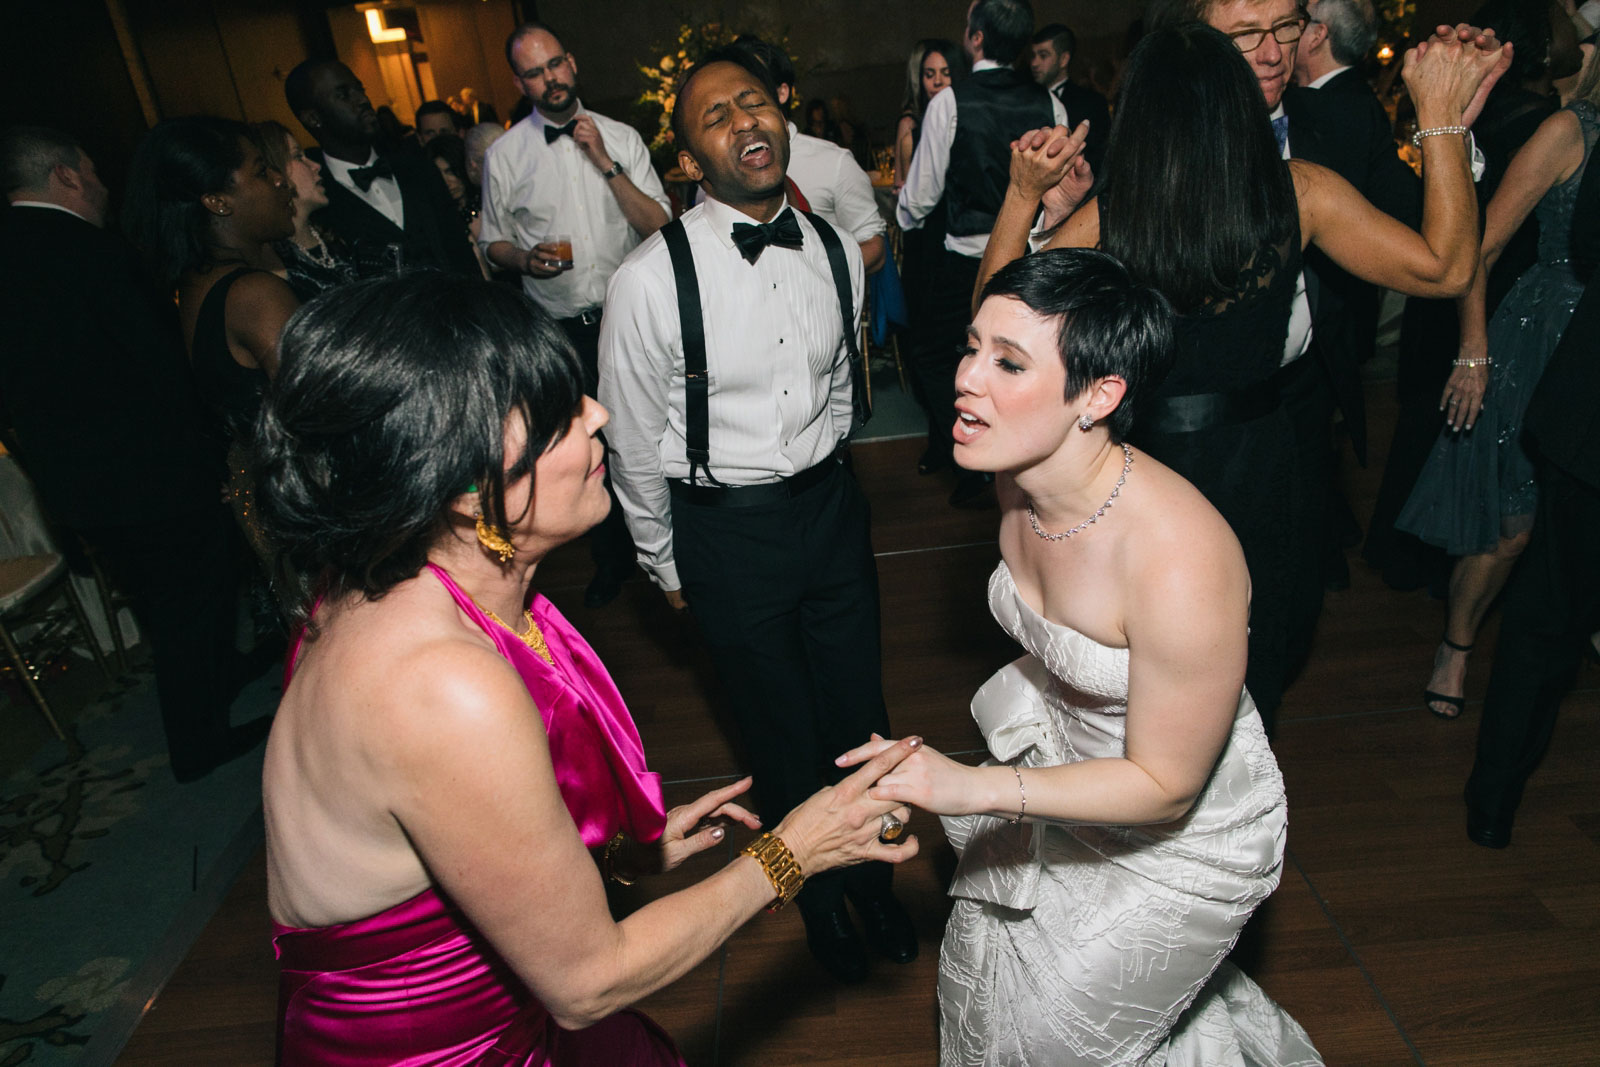 Bride and groom having fun on the dance floor during their interracial wedding reception